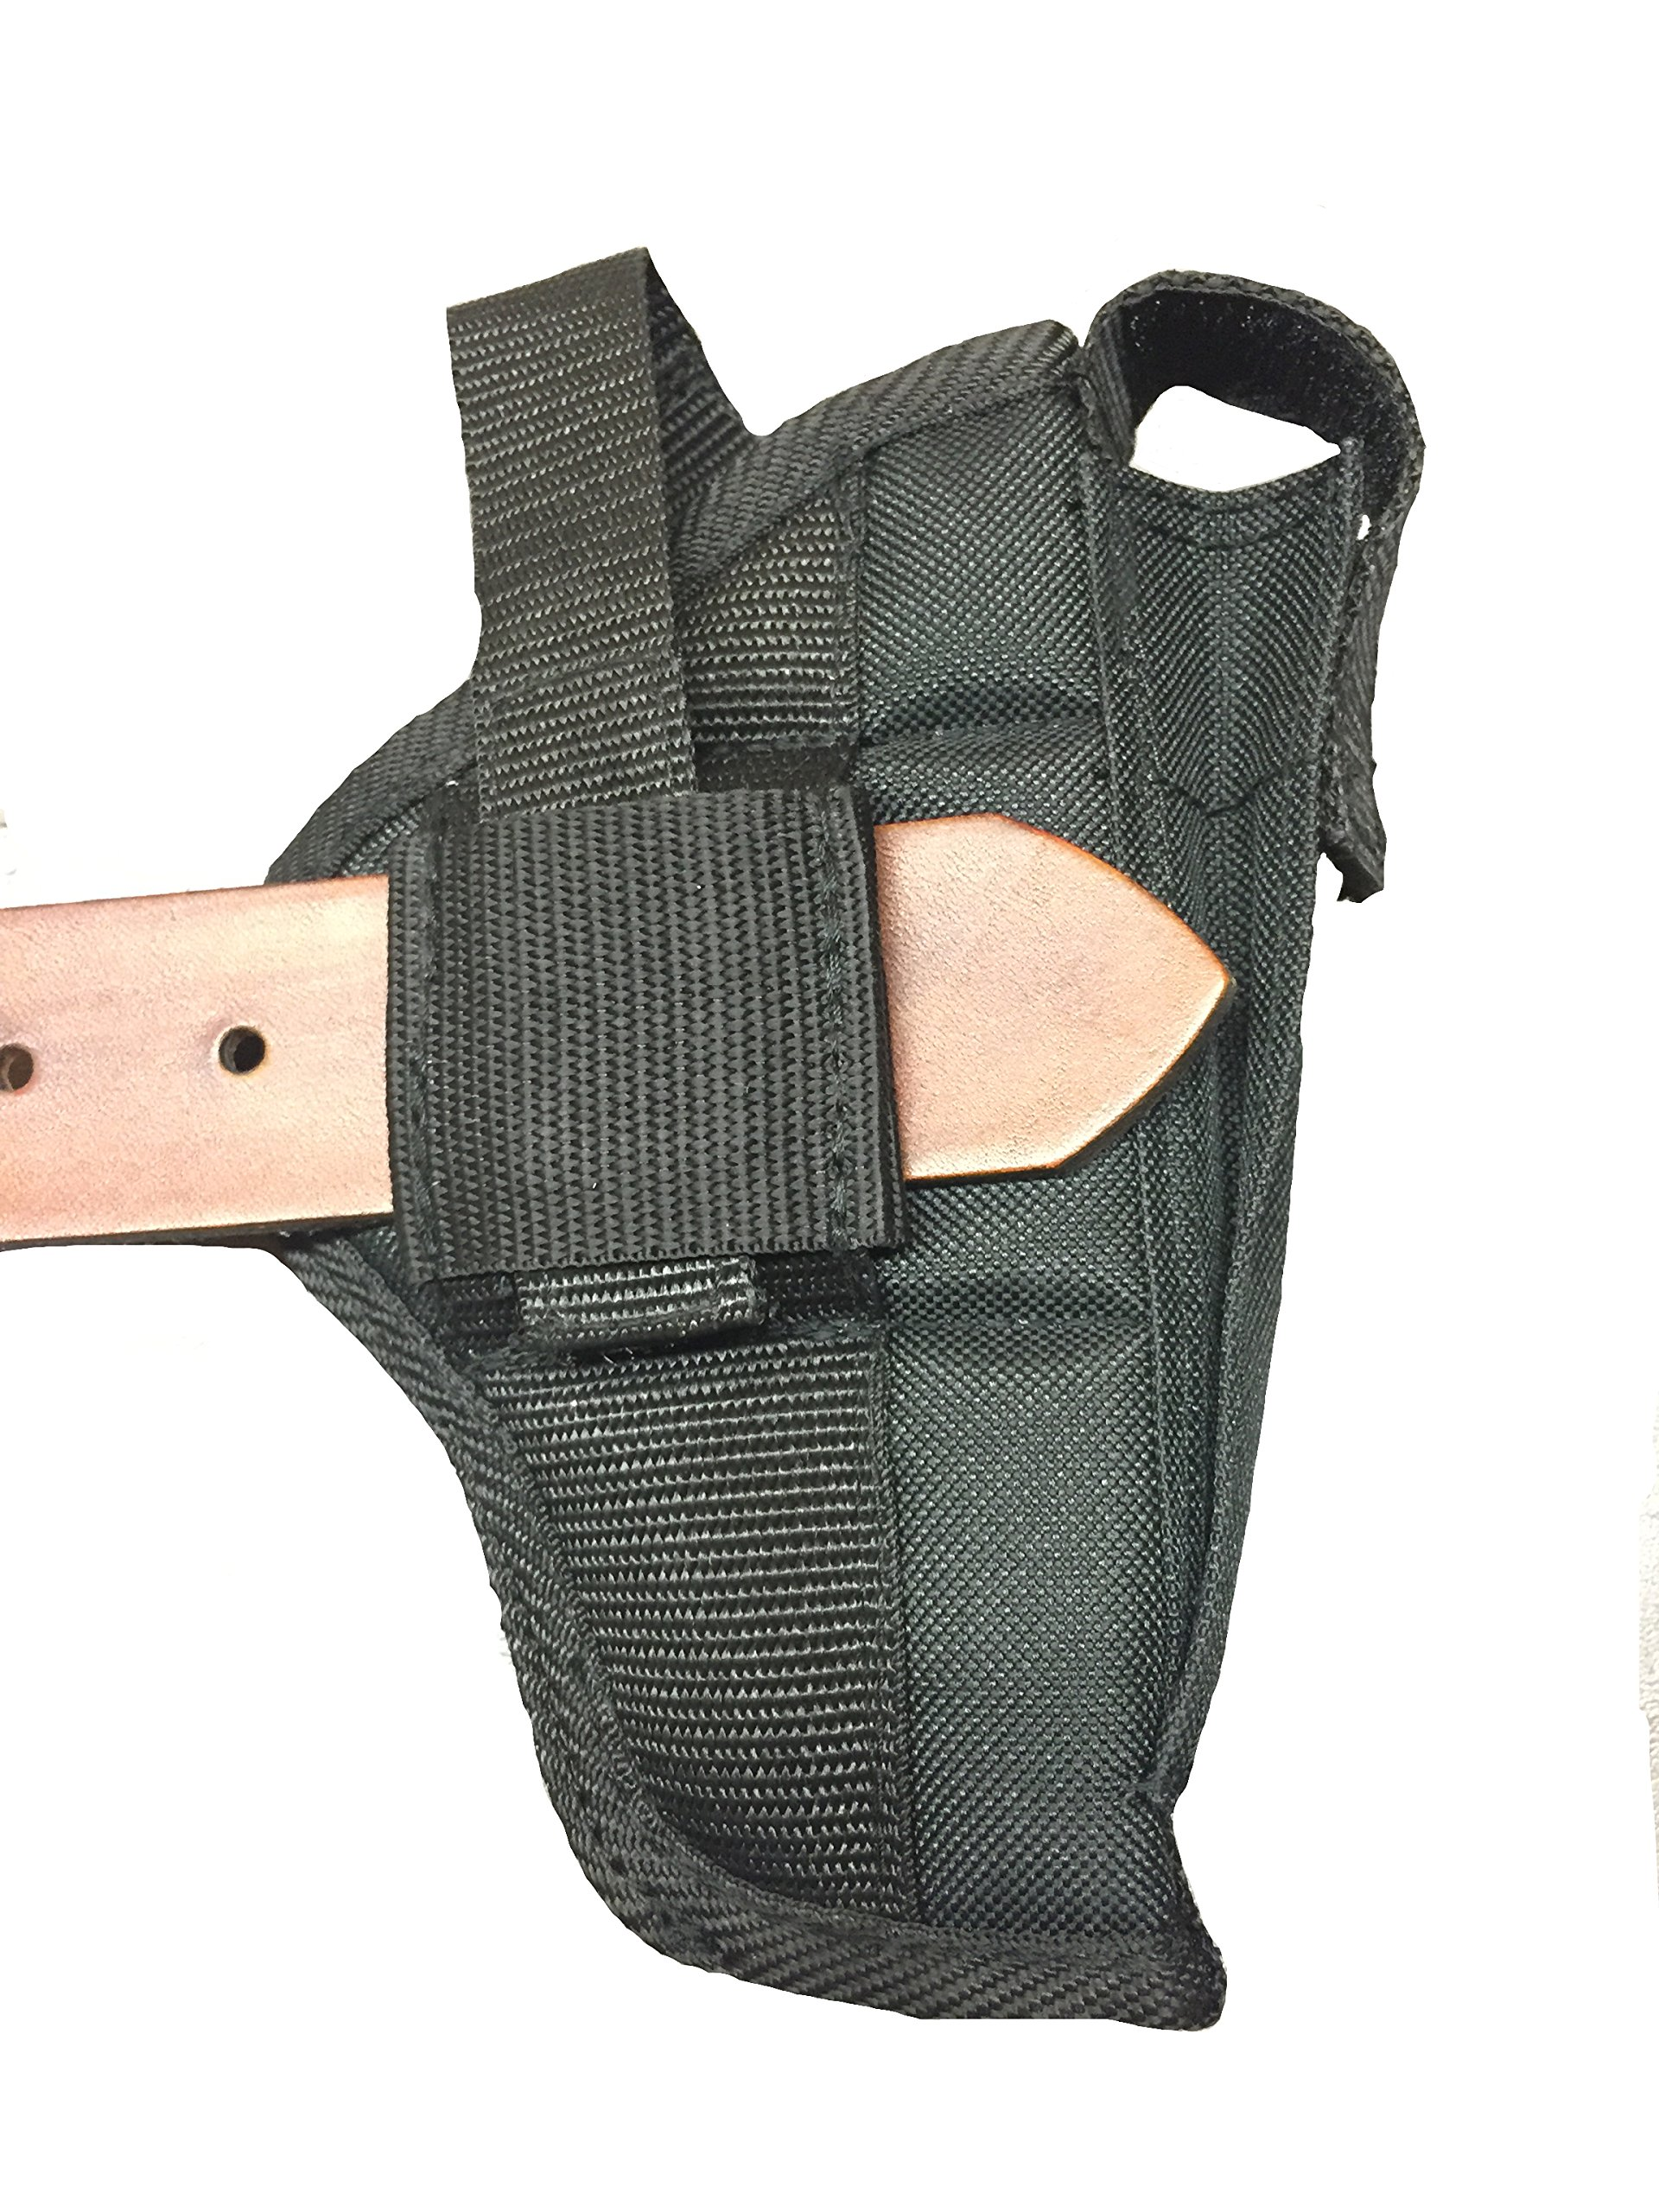 Pro-Tech Outdoors Gun Holster for Smith and Wesson M&P Shield 9MM by Pro-Tech Outdoors (Image #3)